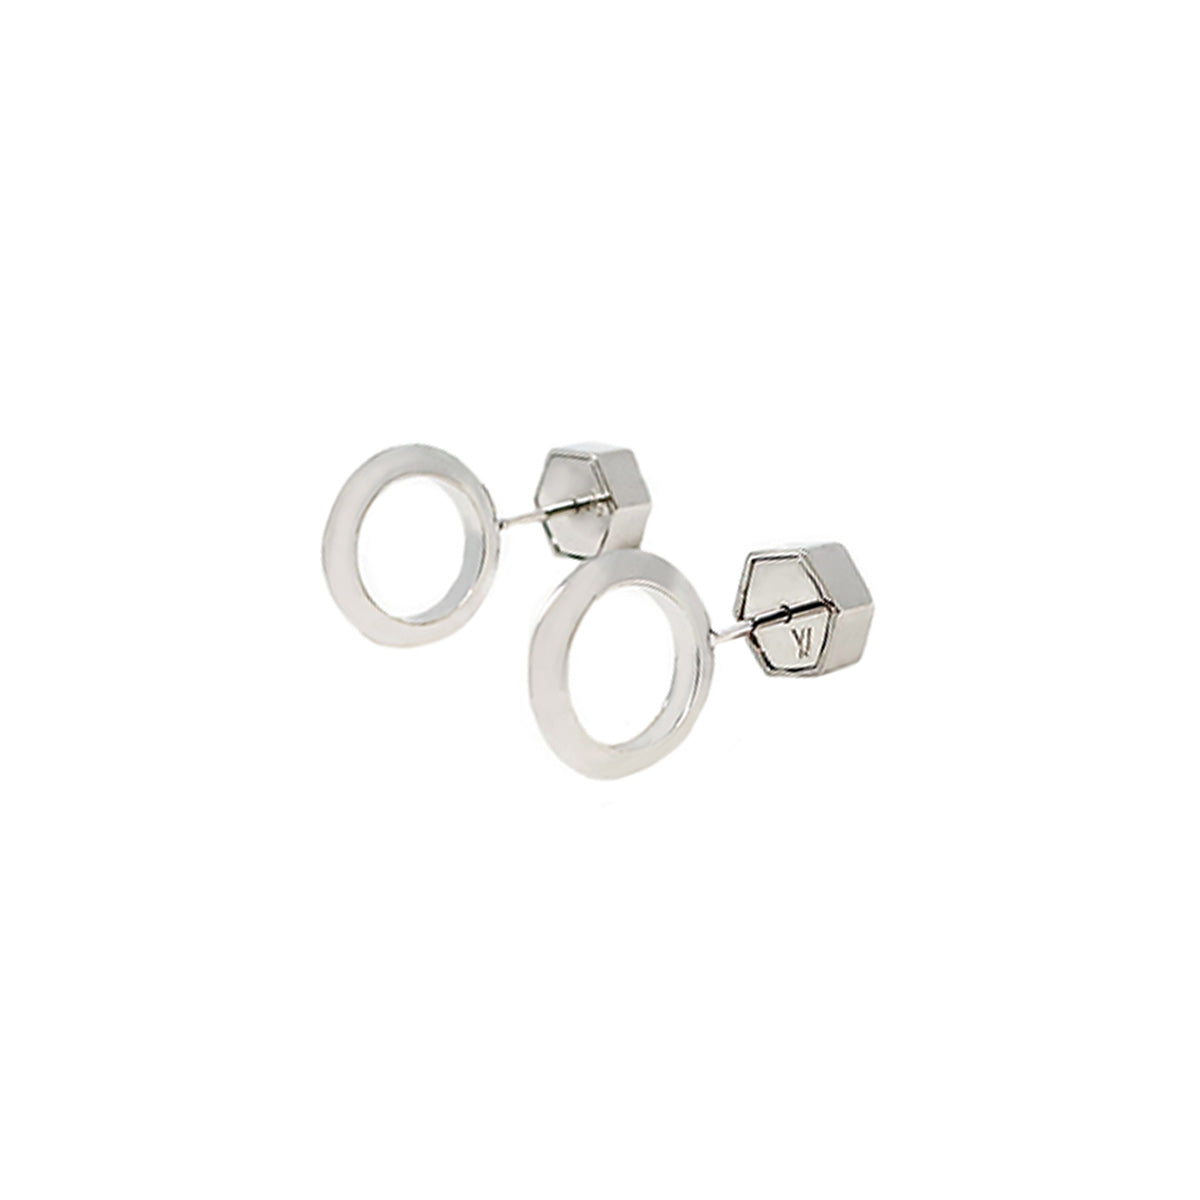 Cira Small Circle Studs - Rhodium